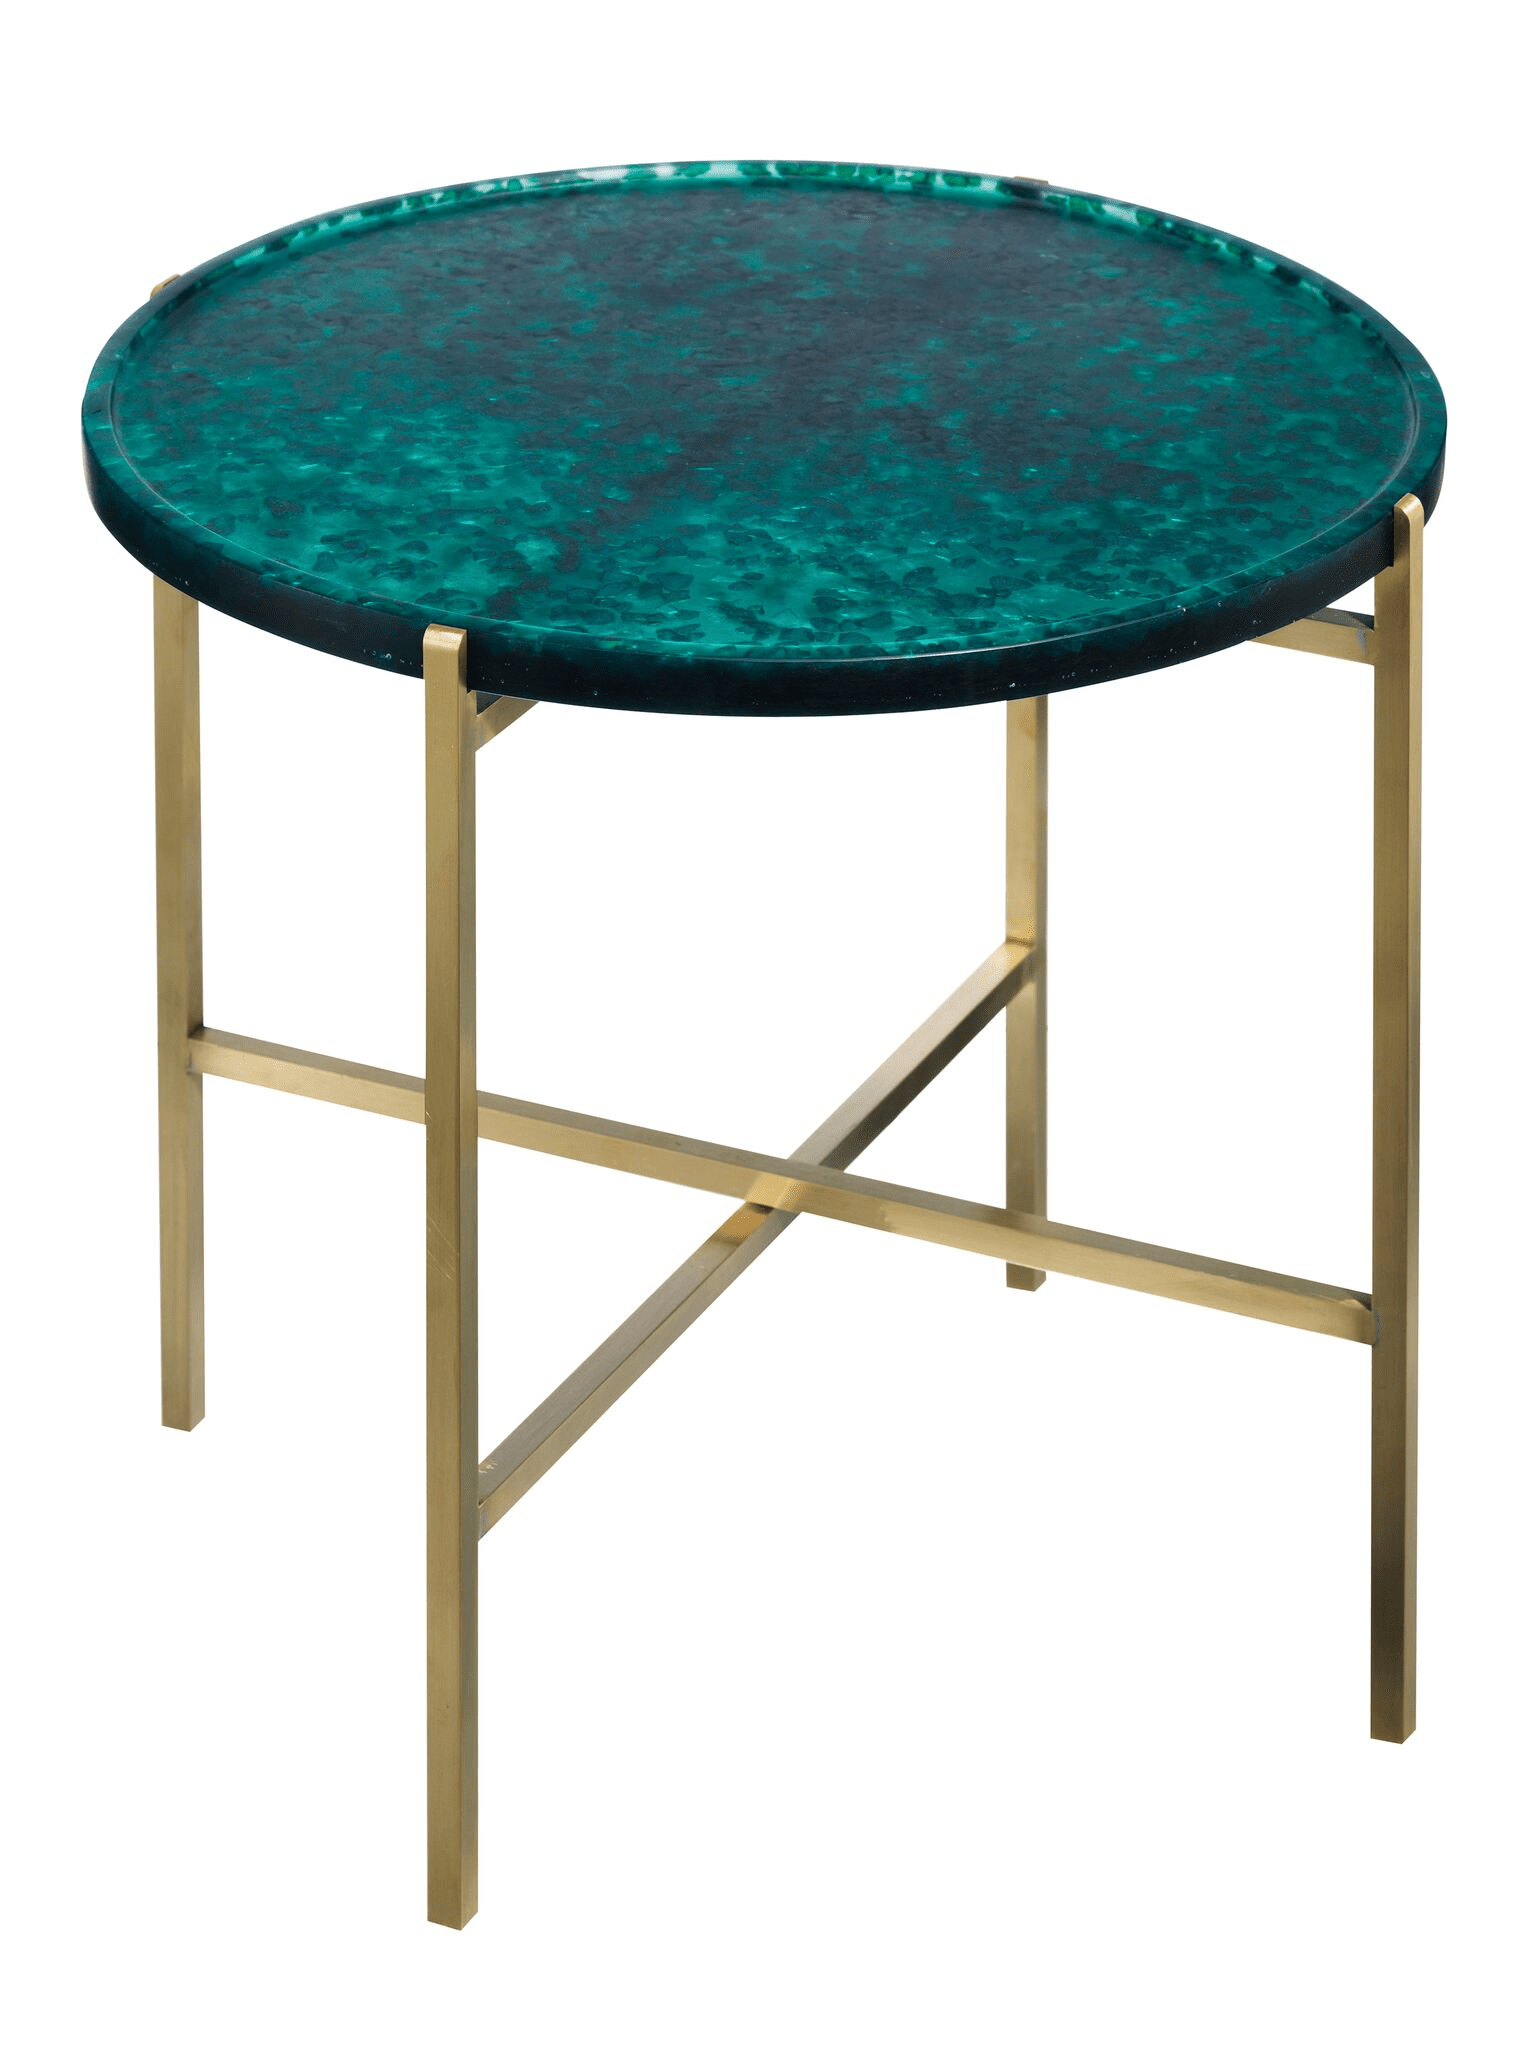 Fold Side Table Made and Designed in Melbourne, Australia